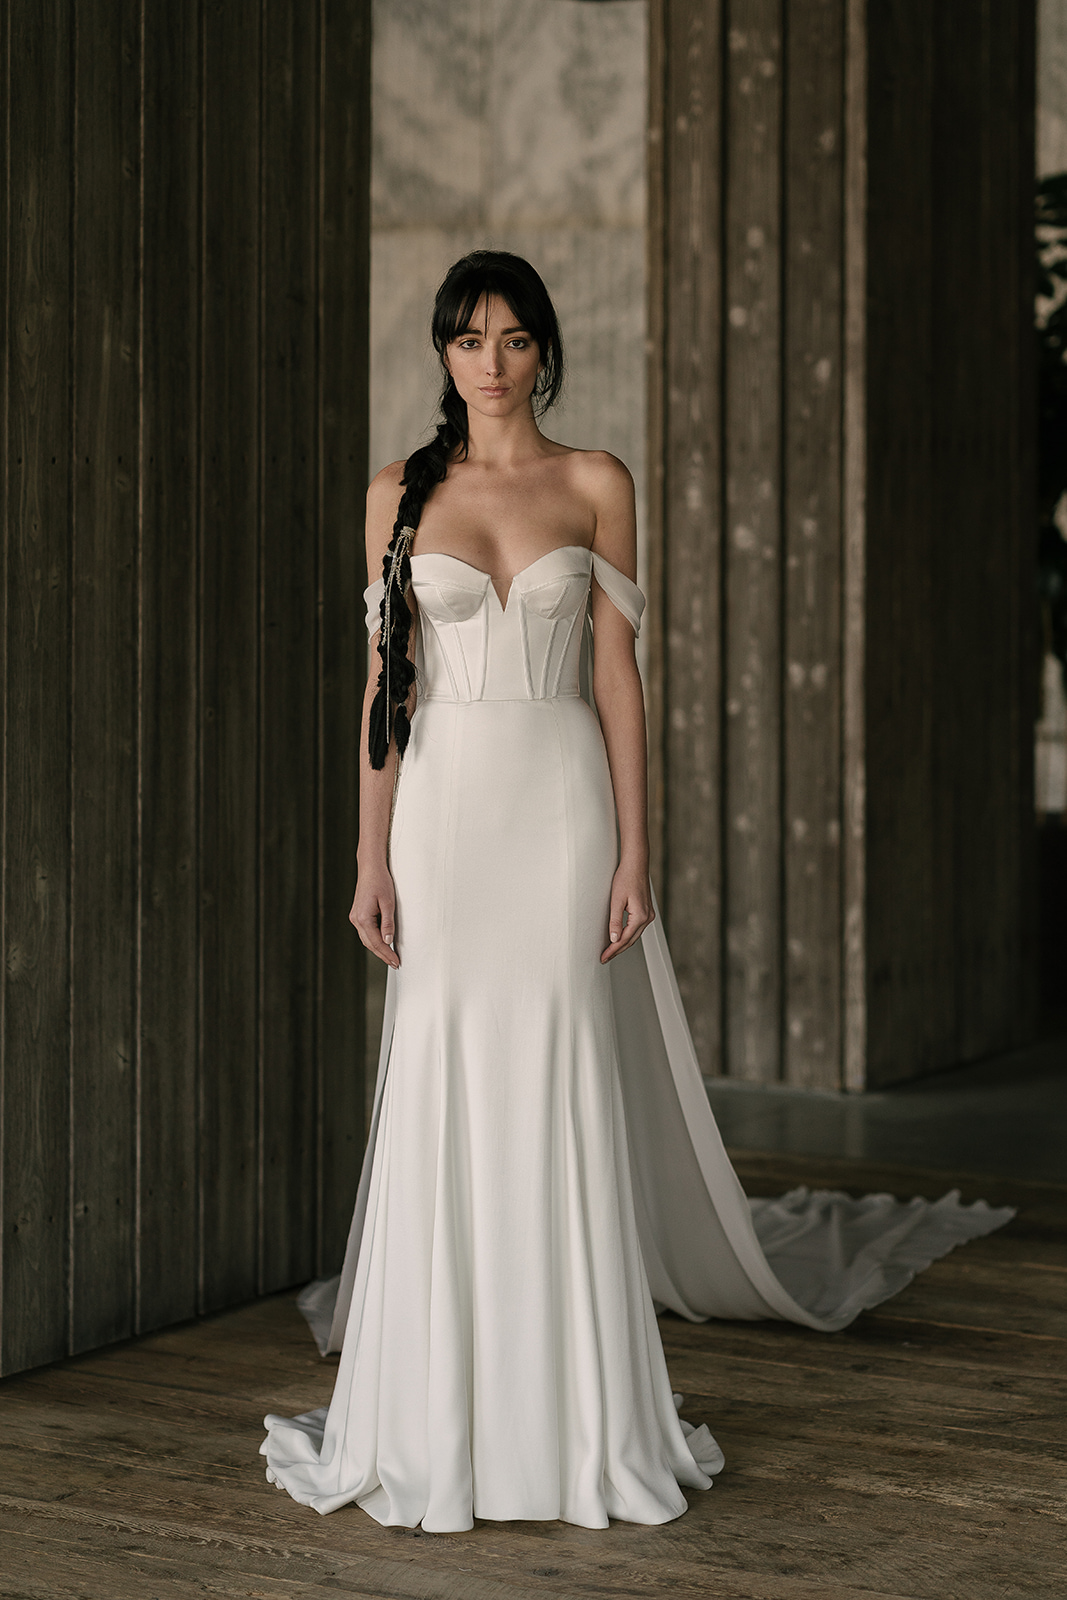 rivini by rita vinieris spring 2019 sheath wedding dress with off-the-shoulder neckline